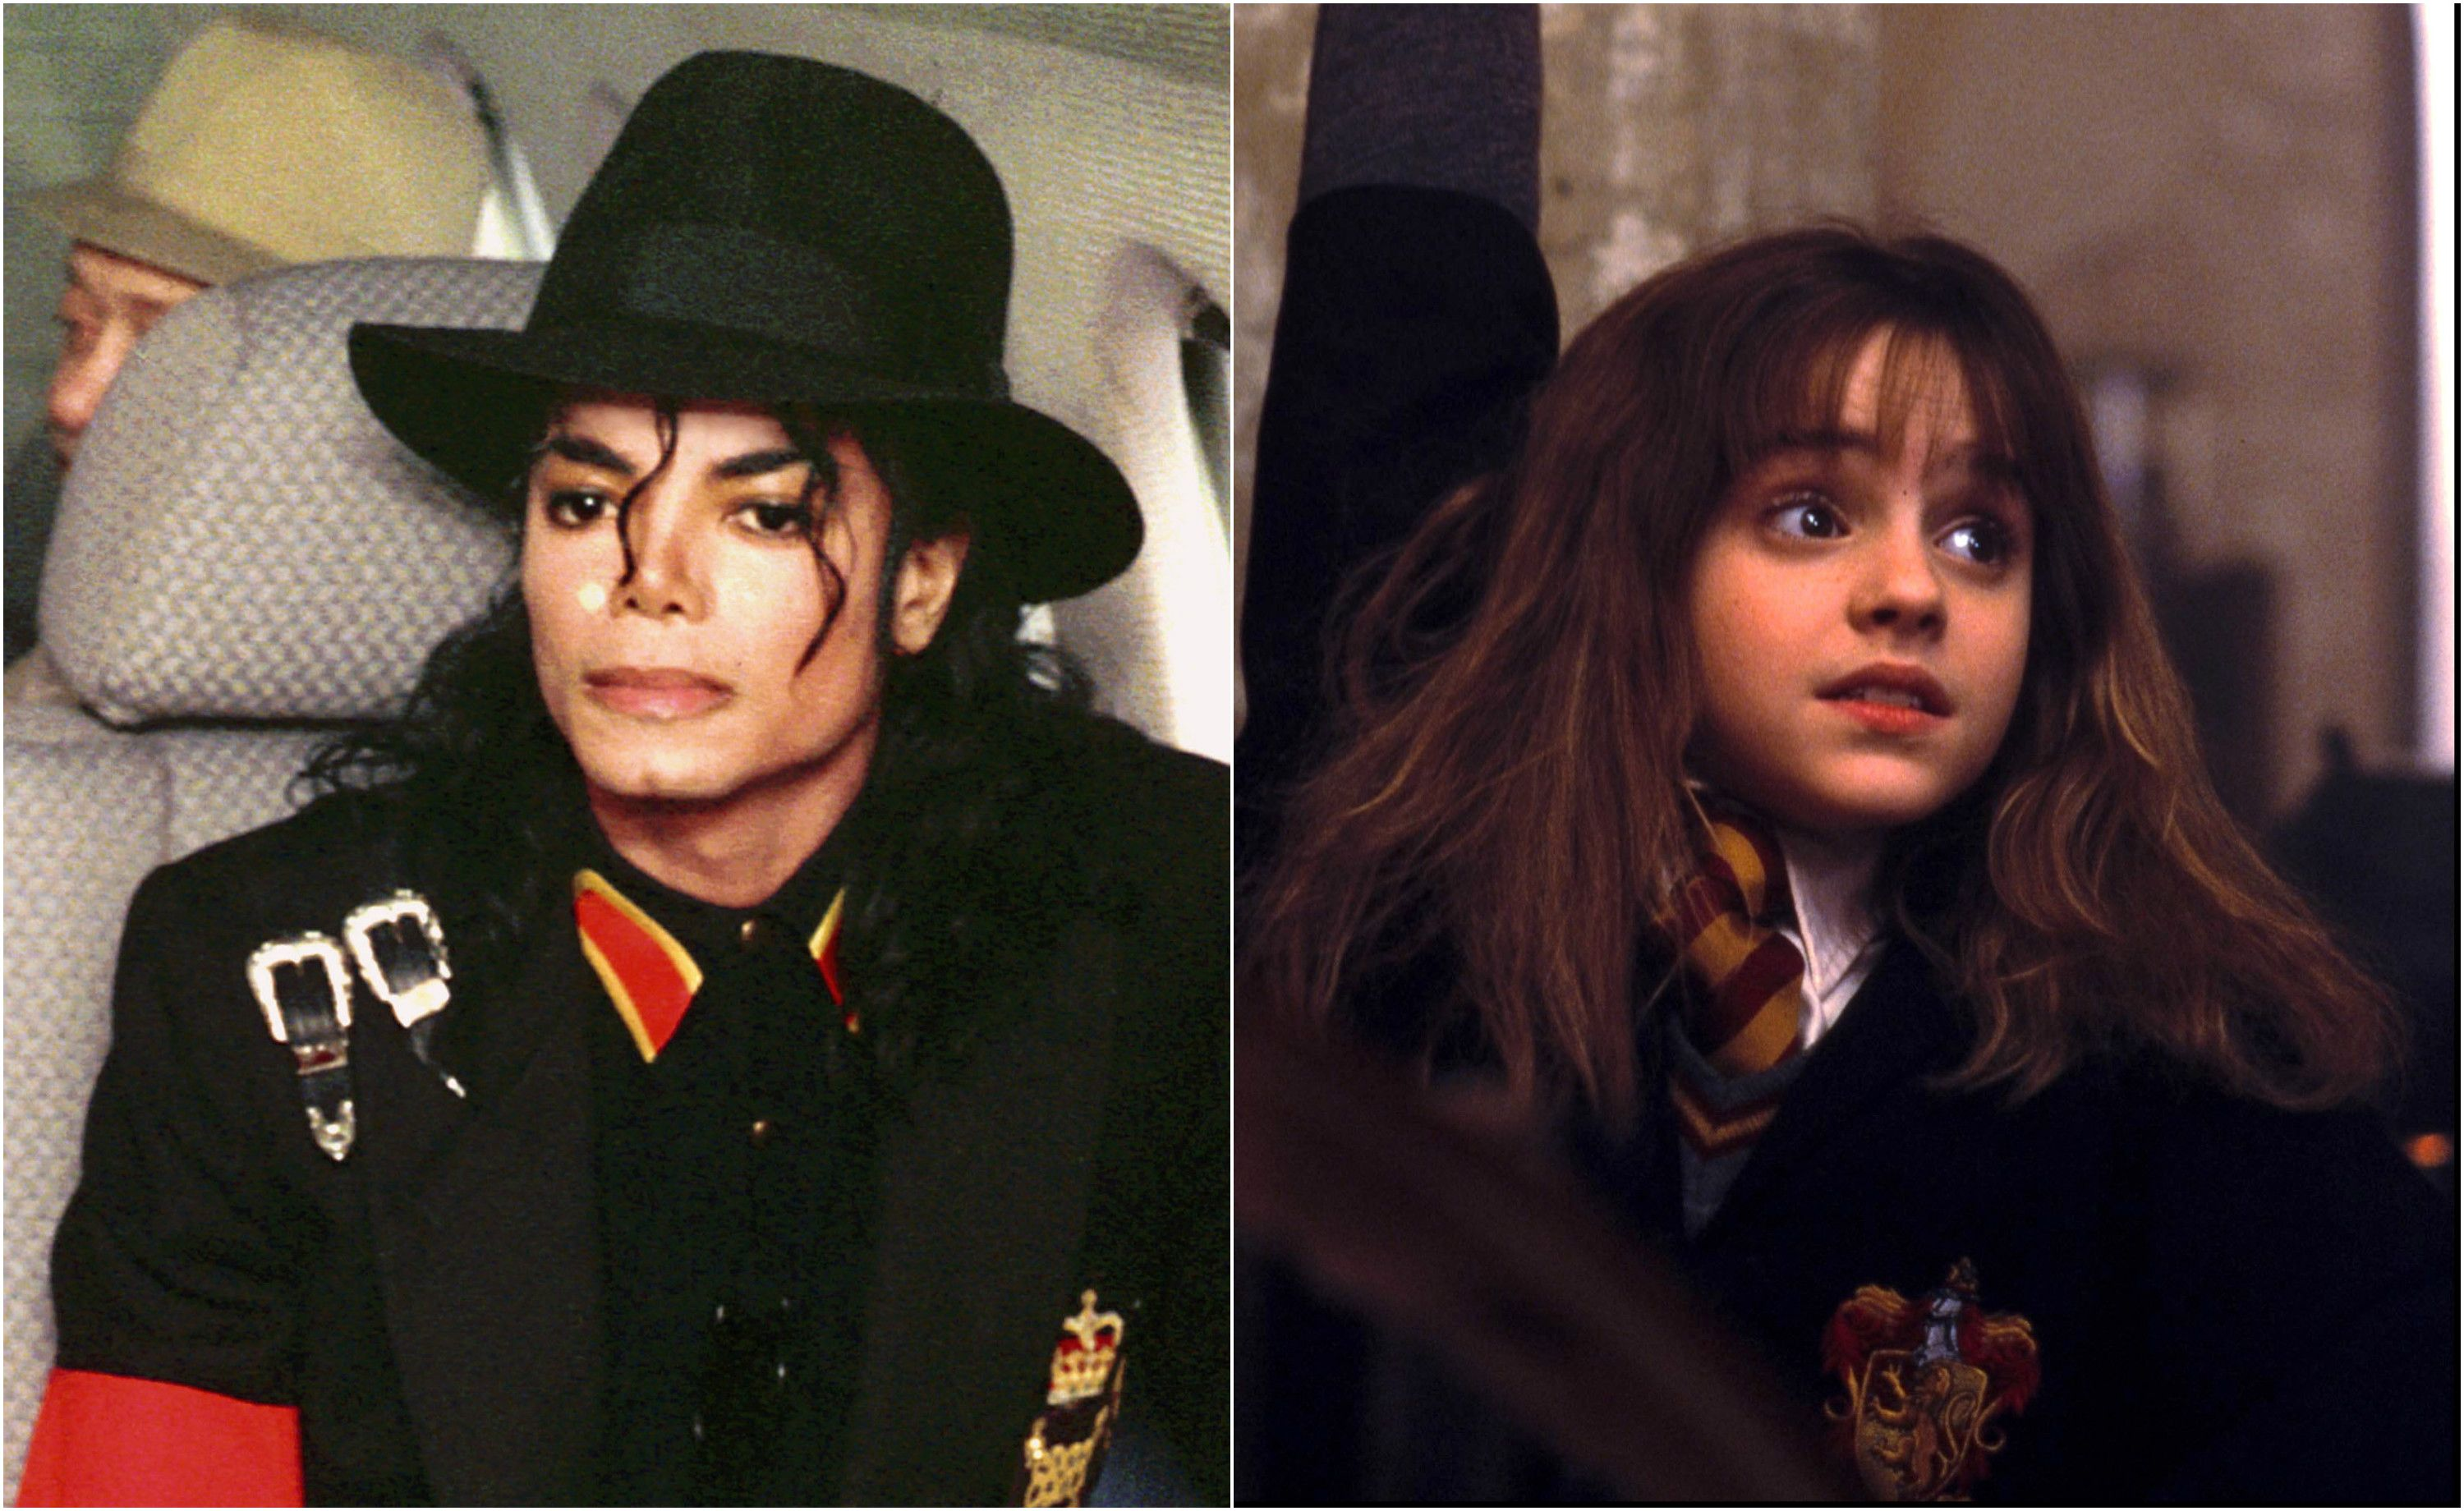 Michael Jackson S Doctor Claims He Was Infatuated With 11 Year Old Harry Potter Star Emma Watson